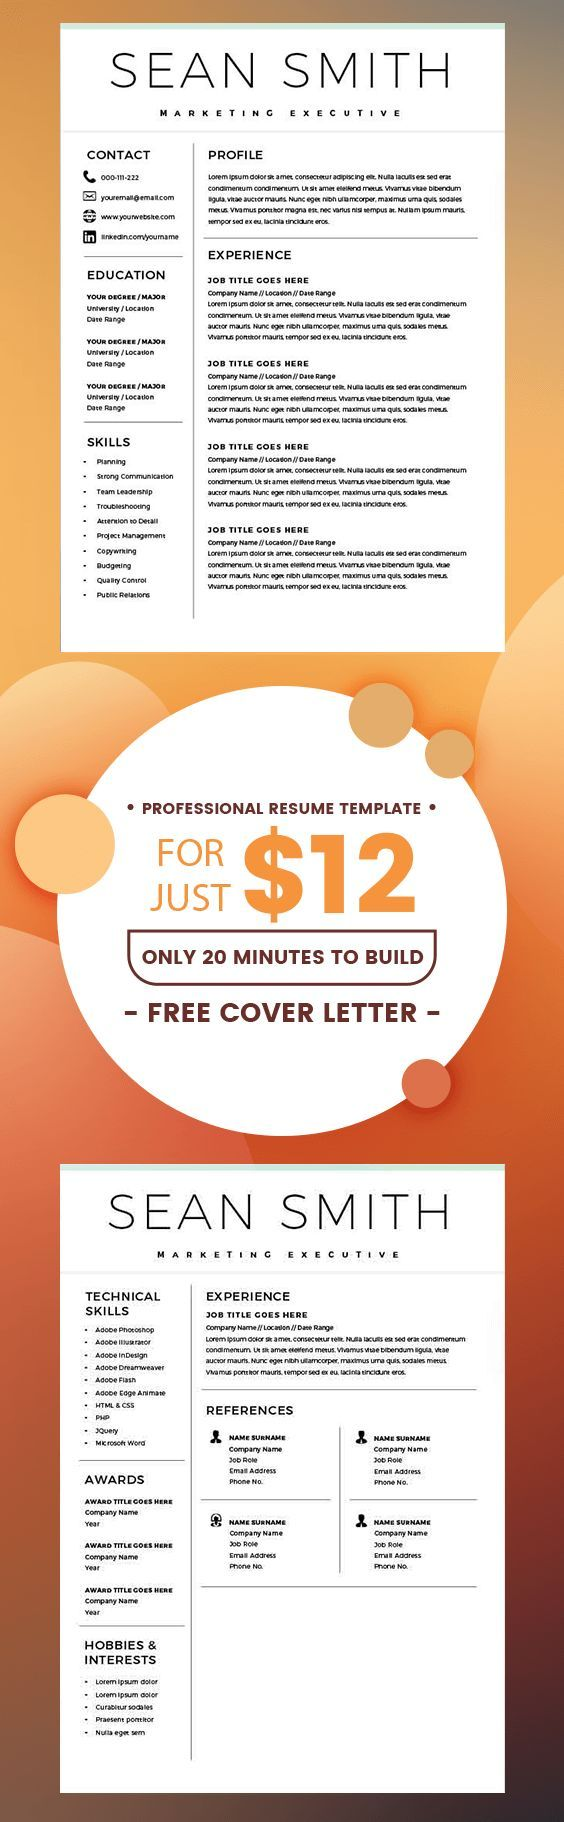 Word Resume Template - Resume Template for Word + Cover Letter ...